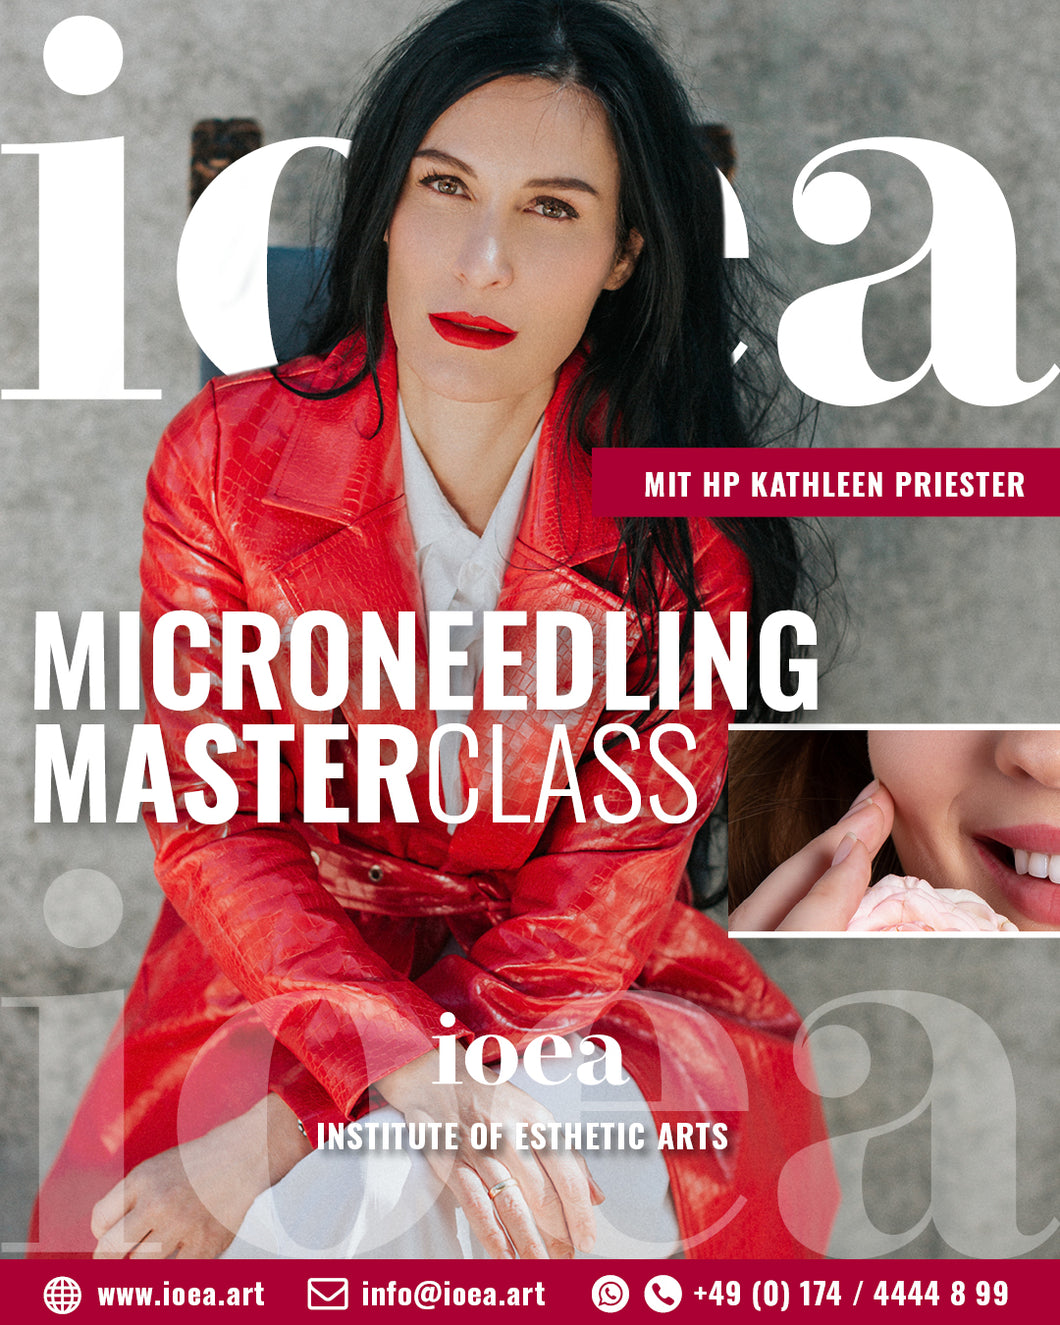 MEDIZINISCHES MICRONEEDLING | MASTER CLASS